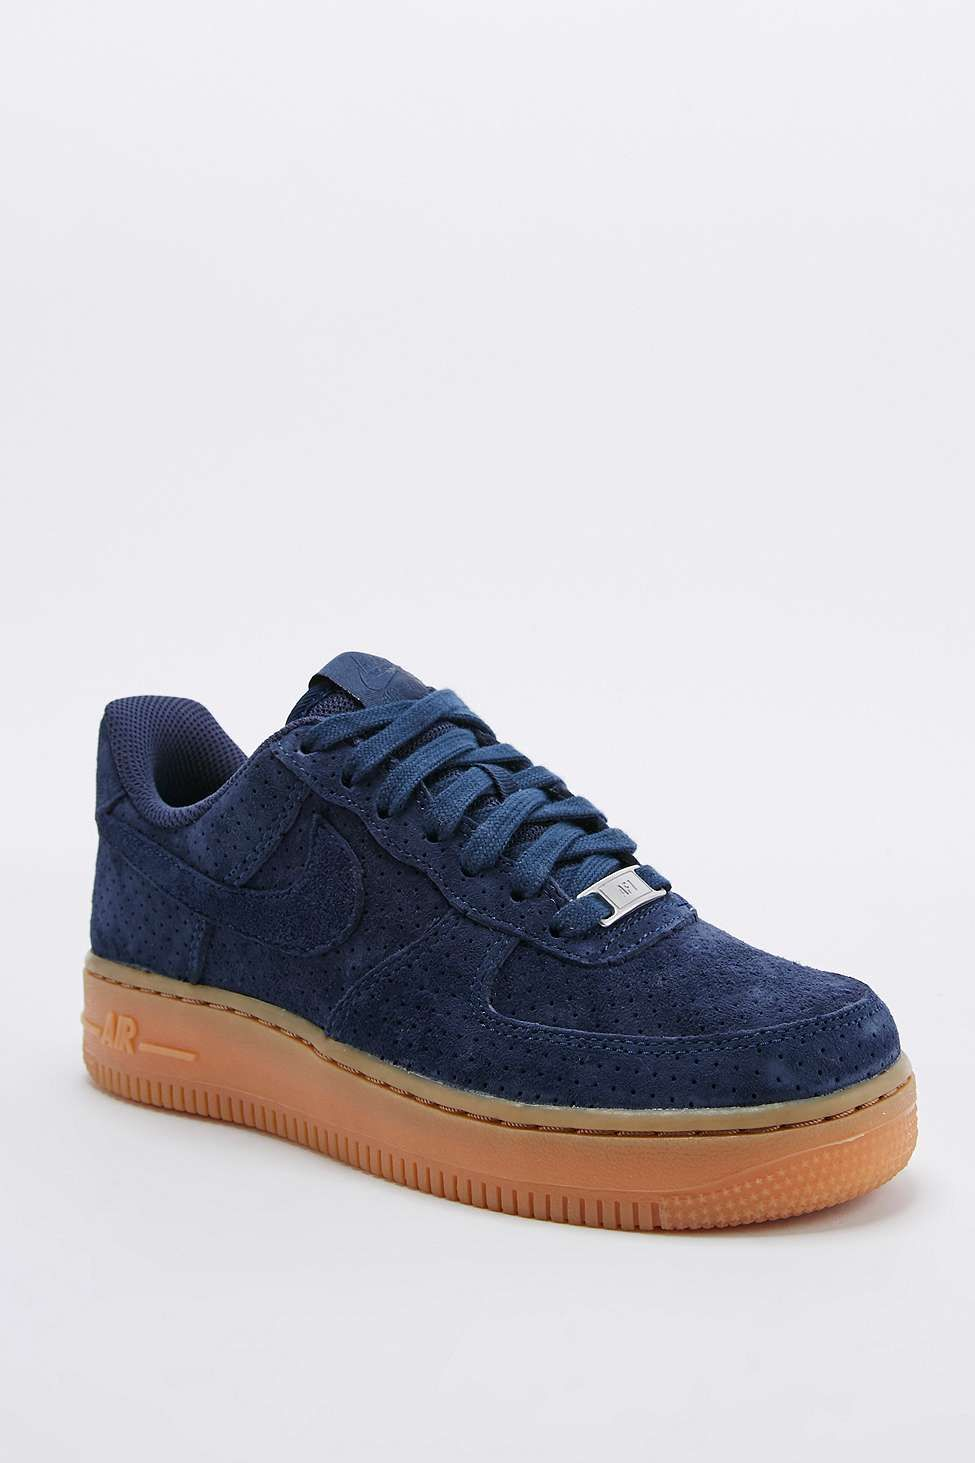 Nike - Baskets montantes Air Force 1 en daim bleu marine